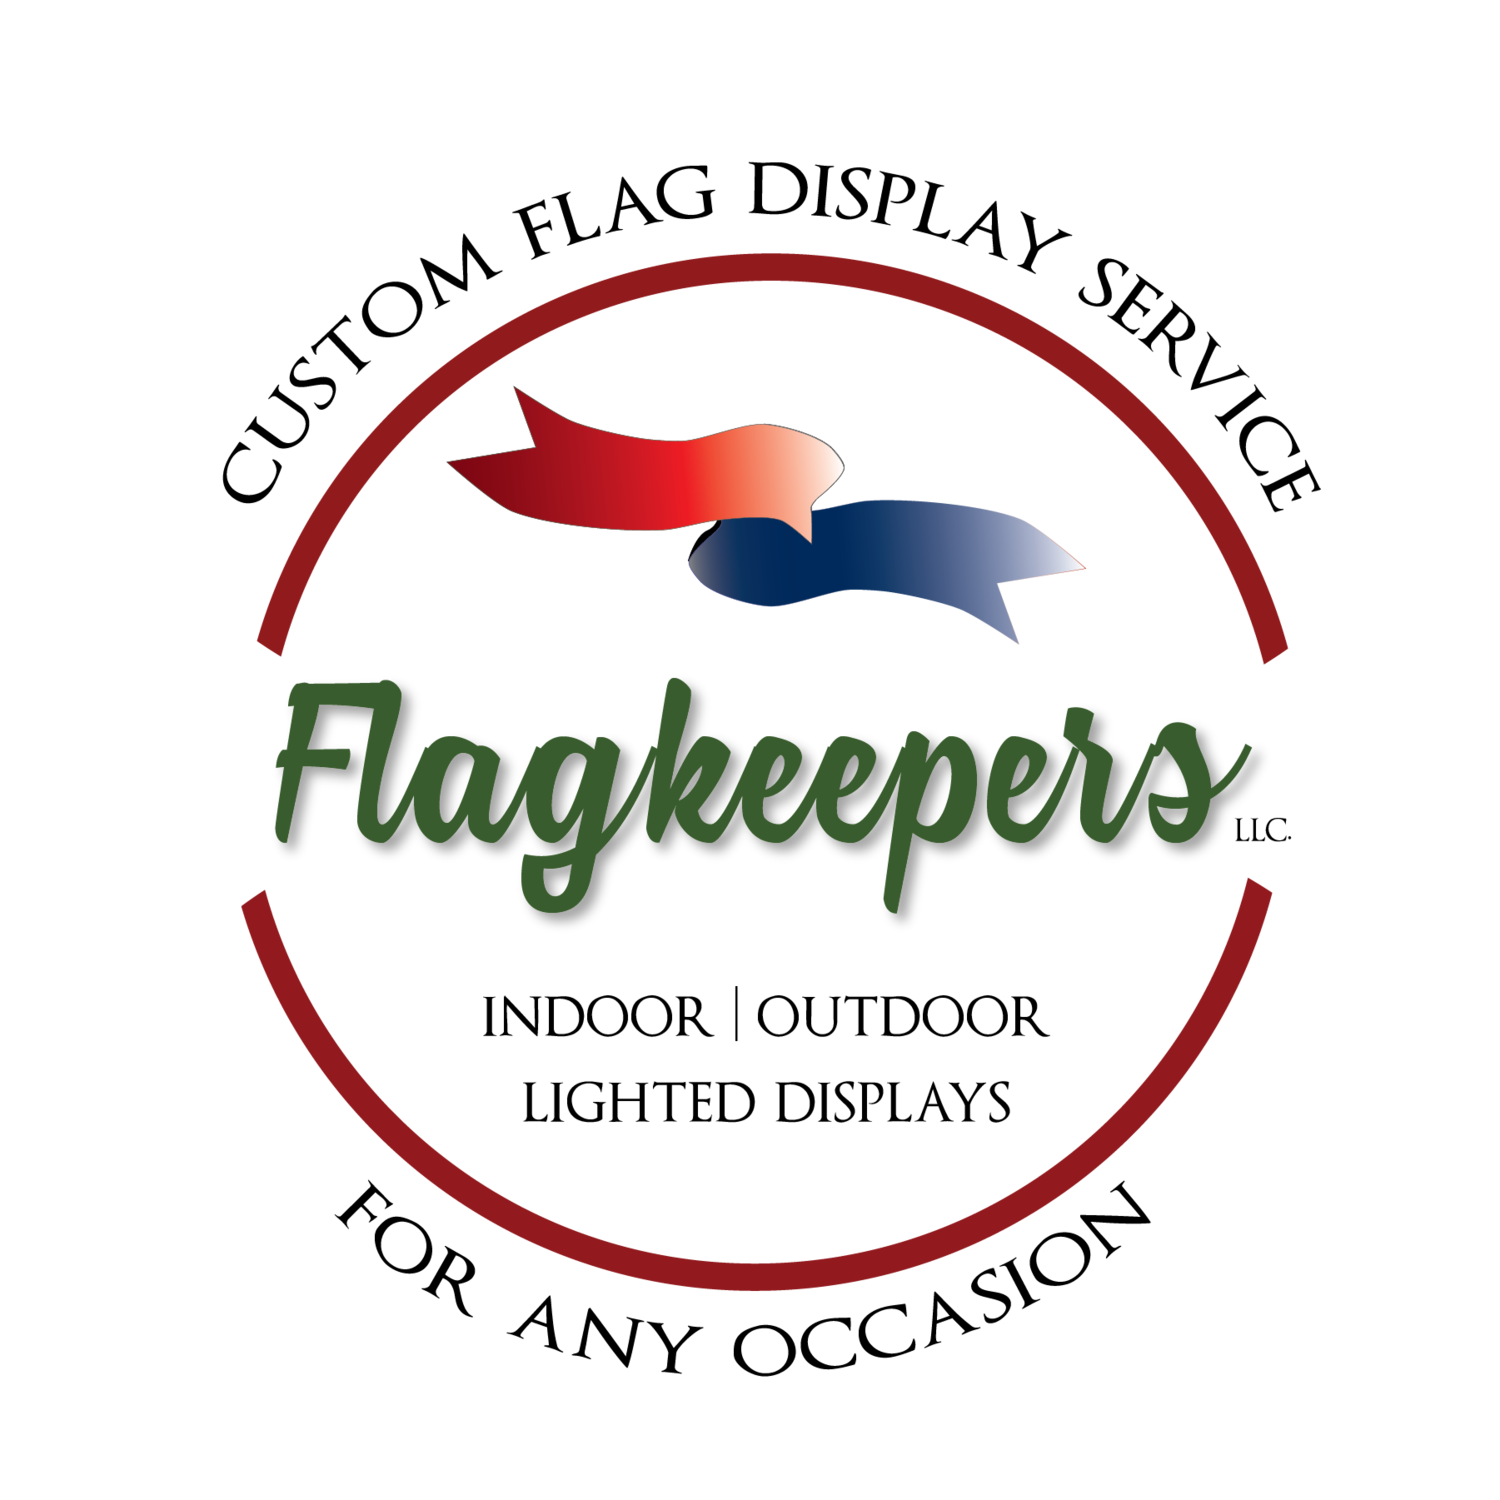 Flagkeeper's